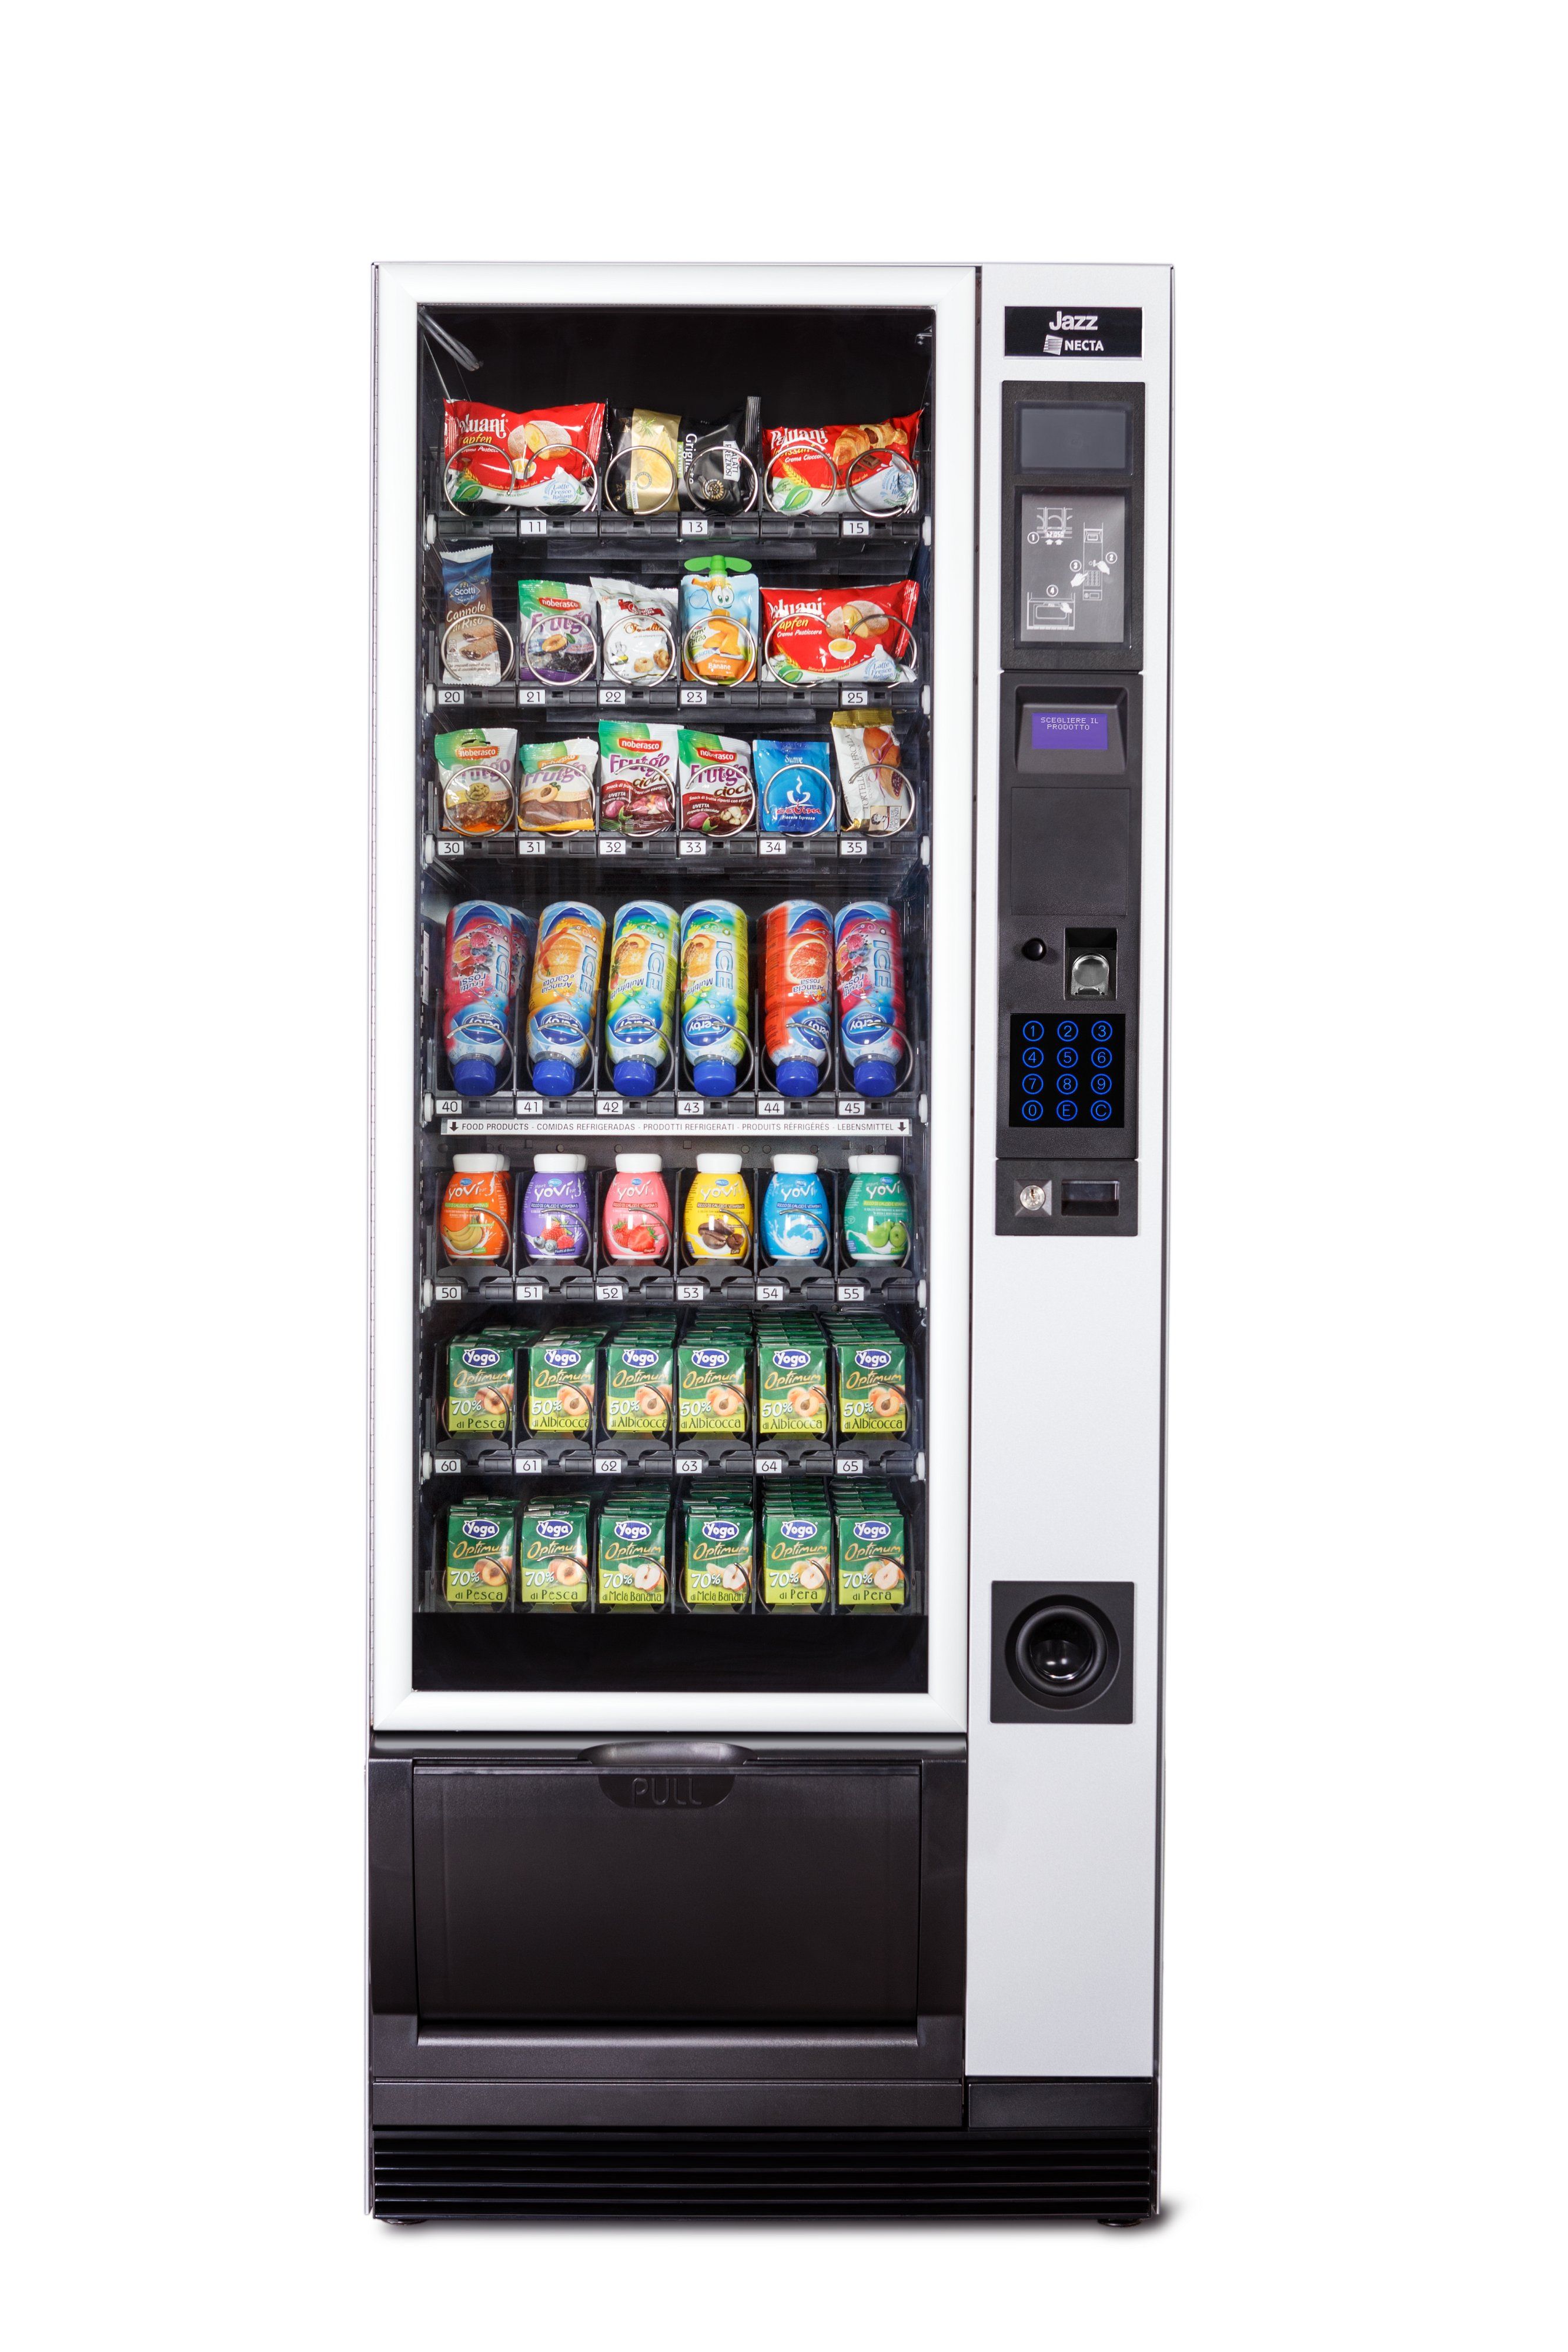 mobile-vending-franchise-business-for-sale-in-sydney-sales-increasing-1